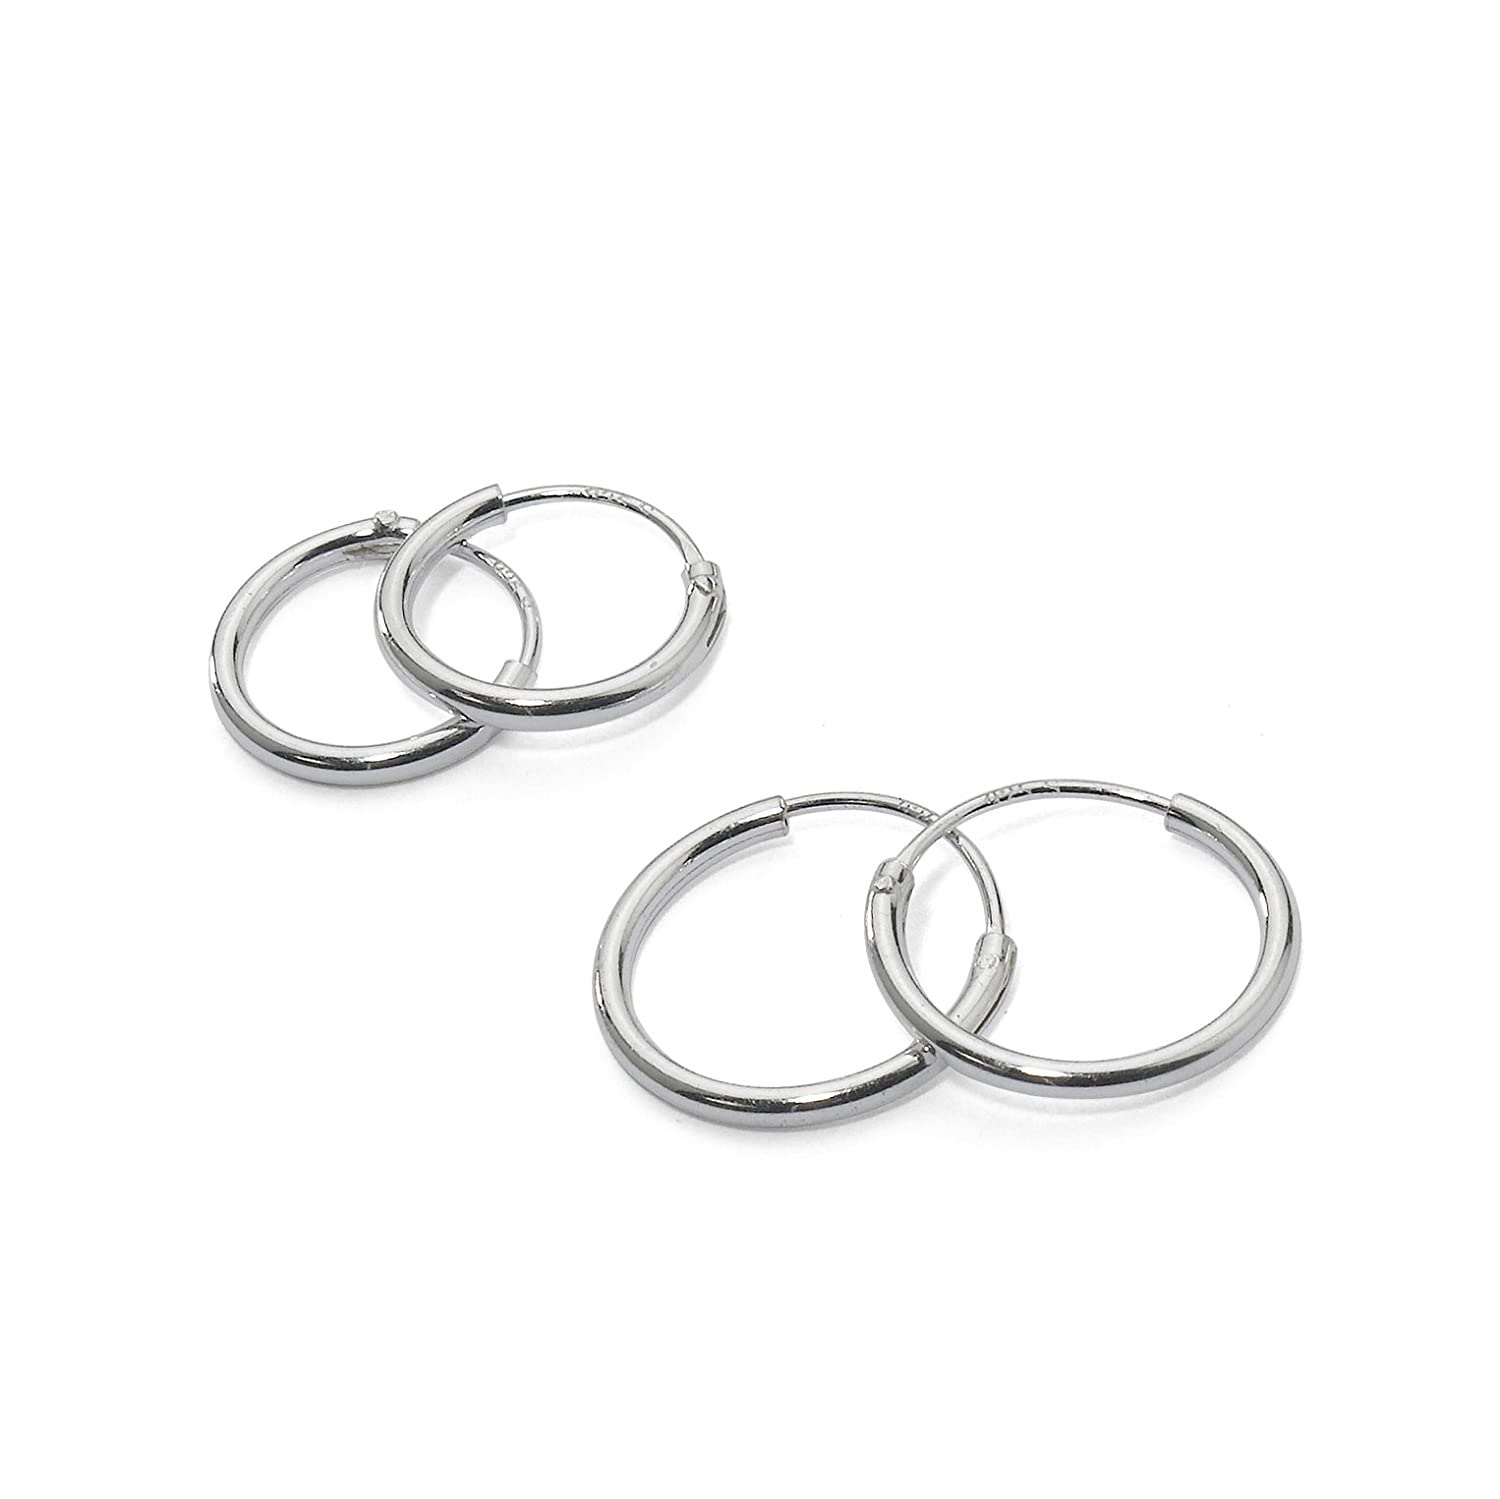 Sterling Silver Endless Earrings Cartilage Image 1